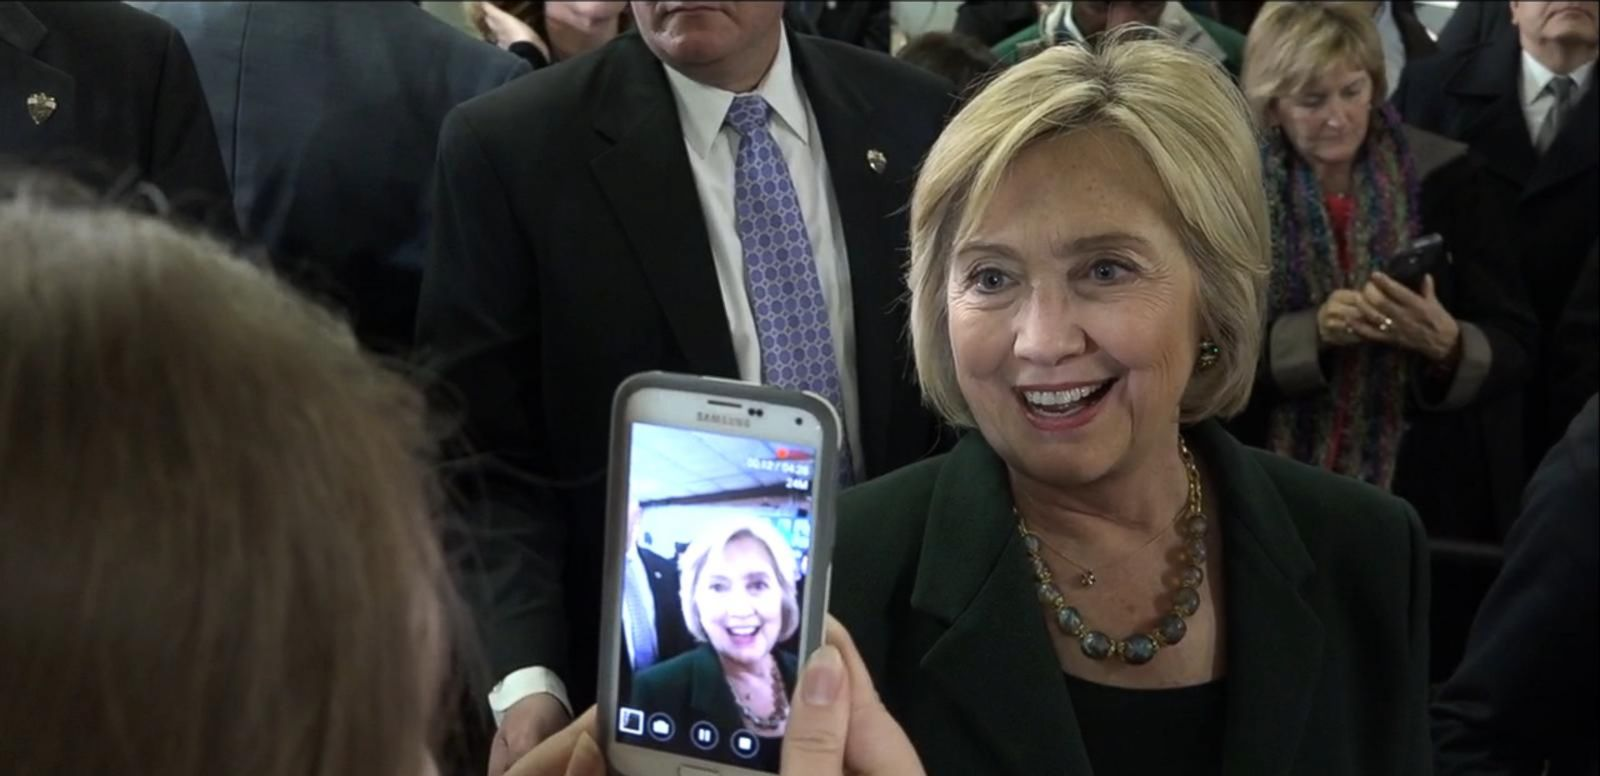 VIDEO: Hillary Clinton Delivers Message to Trump Supporter